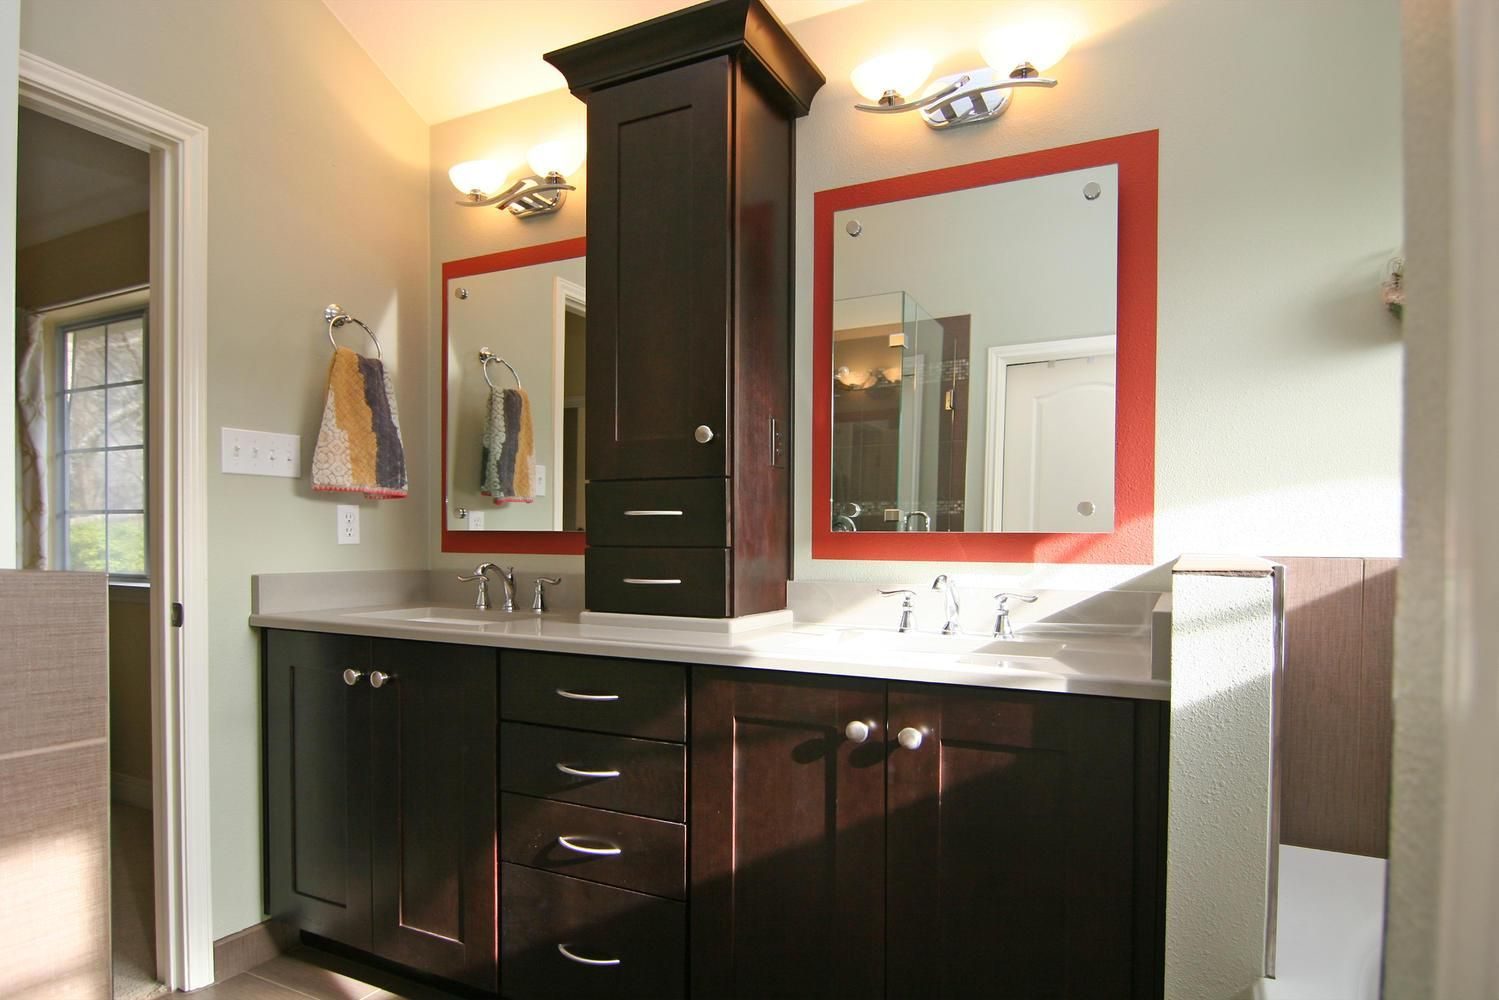 Bathroom Greenwich Double Vanity From Installing Bathroom Vanity Home Interior Design And